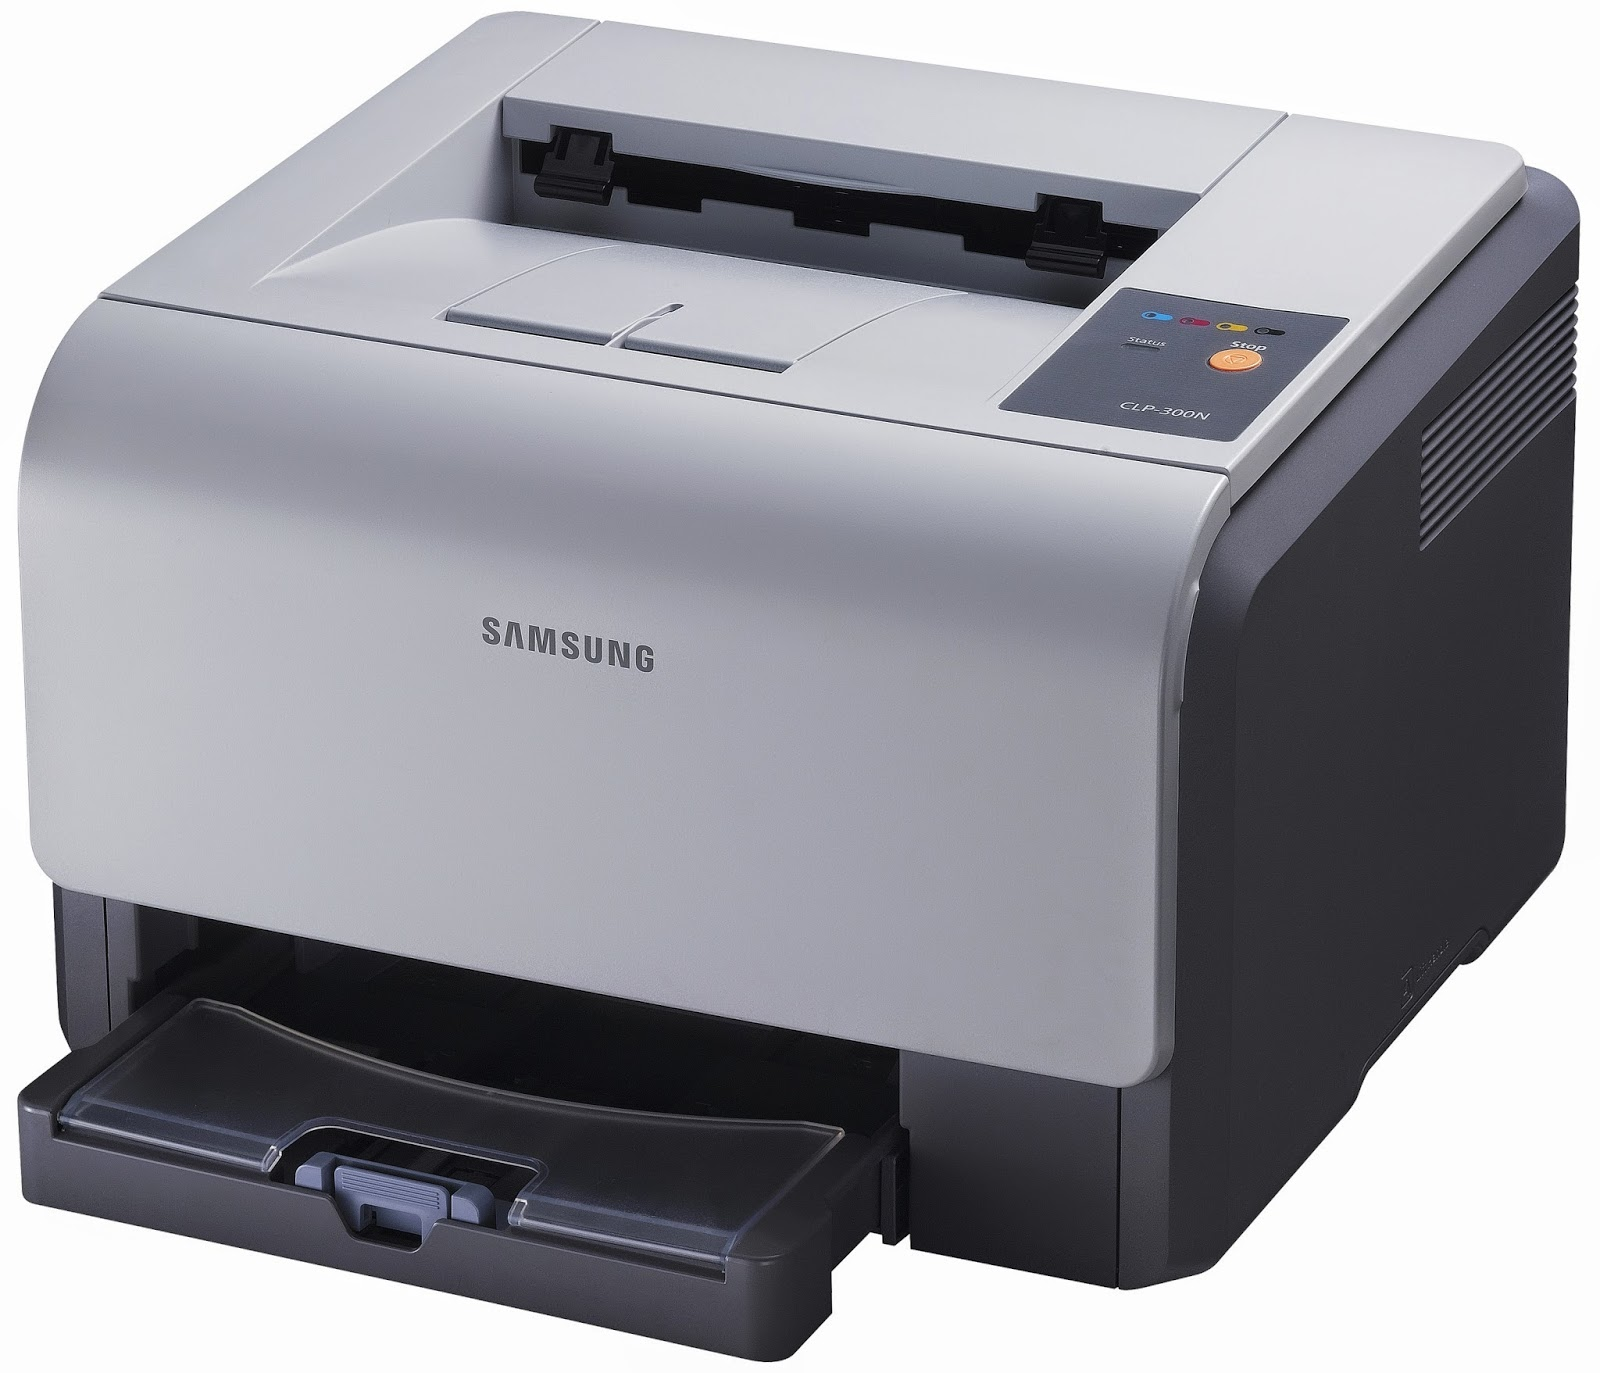 samsung clp 300 driver download download printer driver. Black Bedroom Furniture Sets. Home Design Ideas